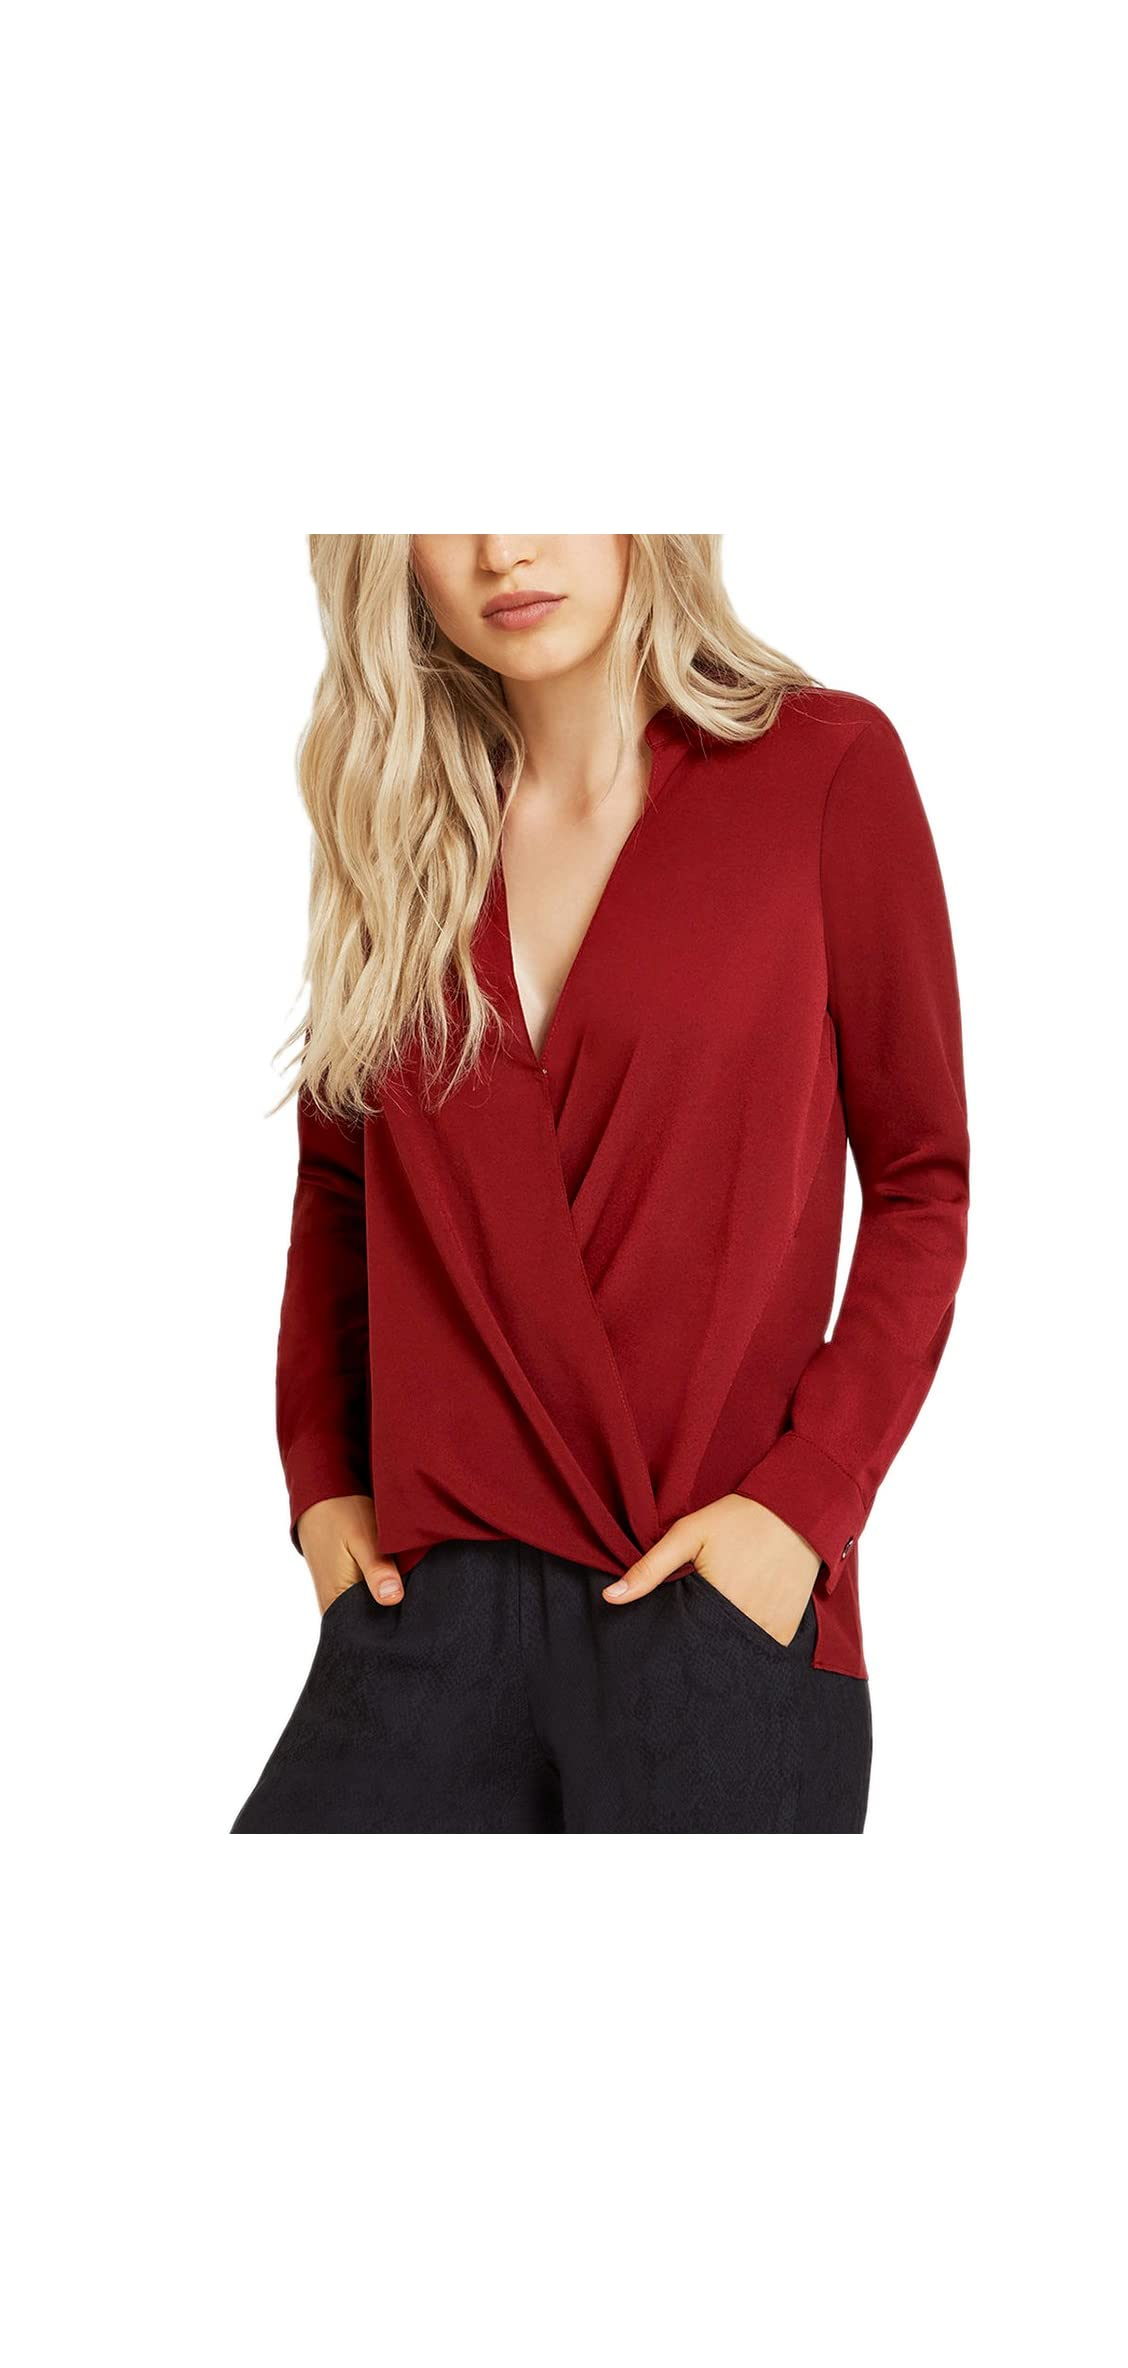 Women's Casual V Neck Chiffon Blouses Long Sleeves Loose